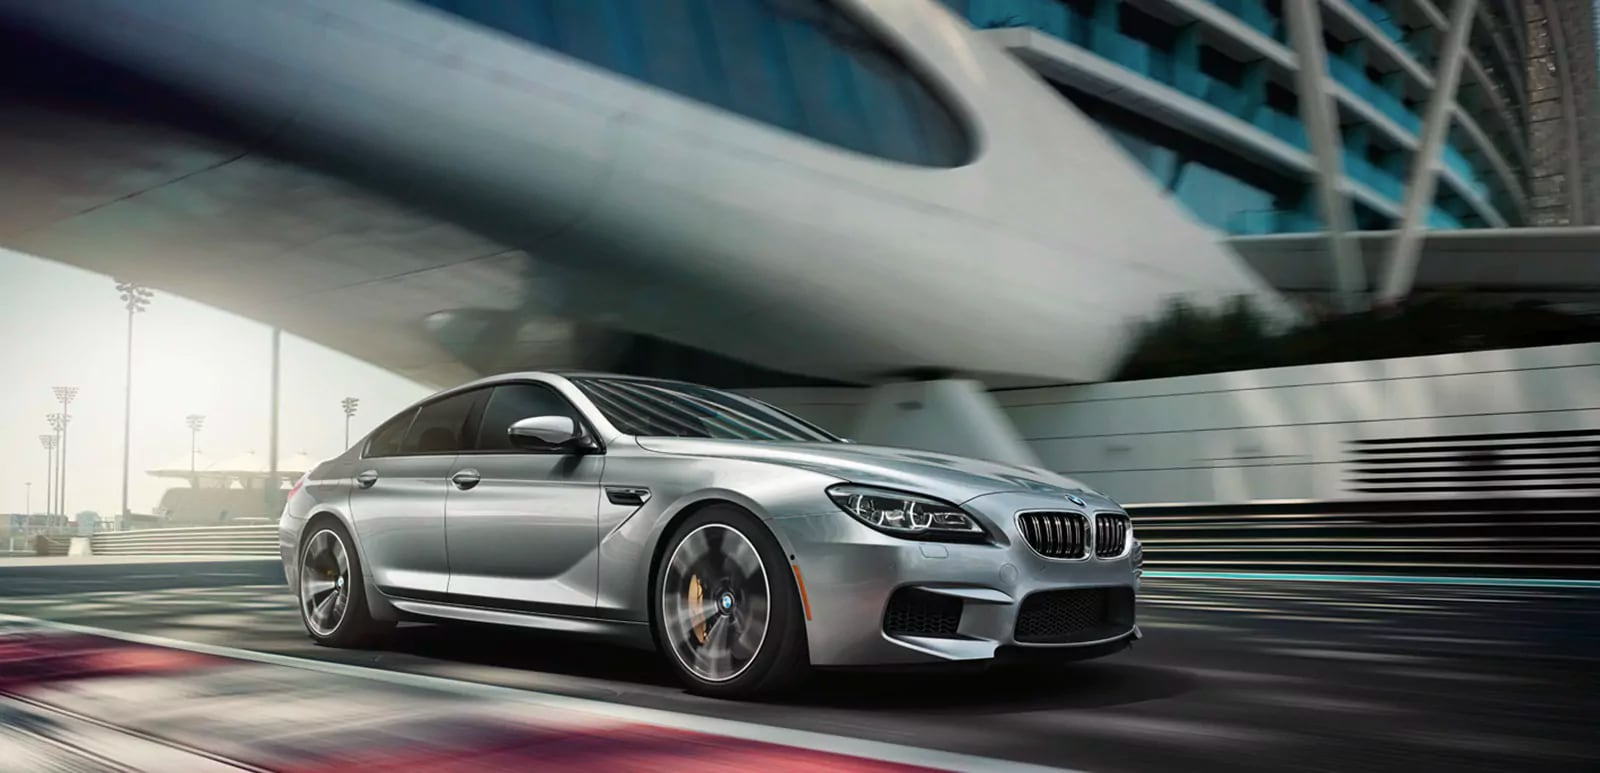 Bmw North America >> Bmw M6 Media Gallery Bmw North America